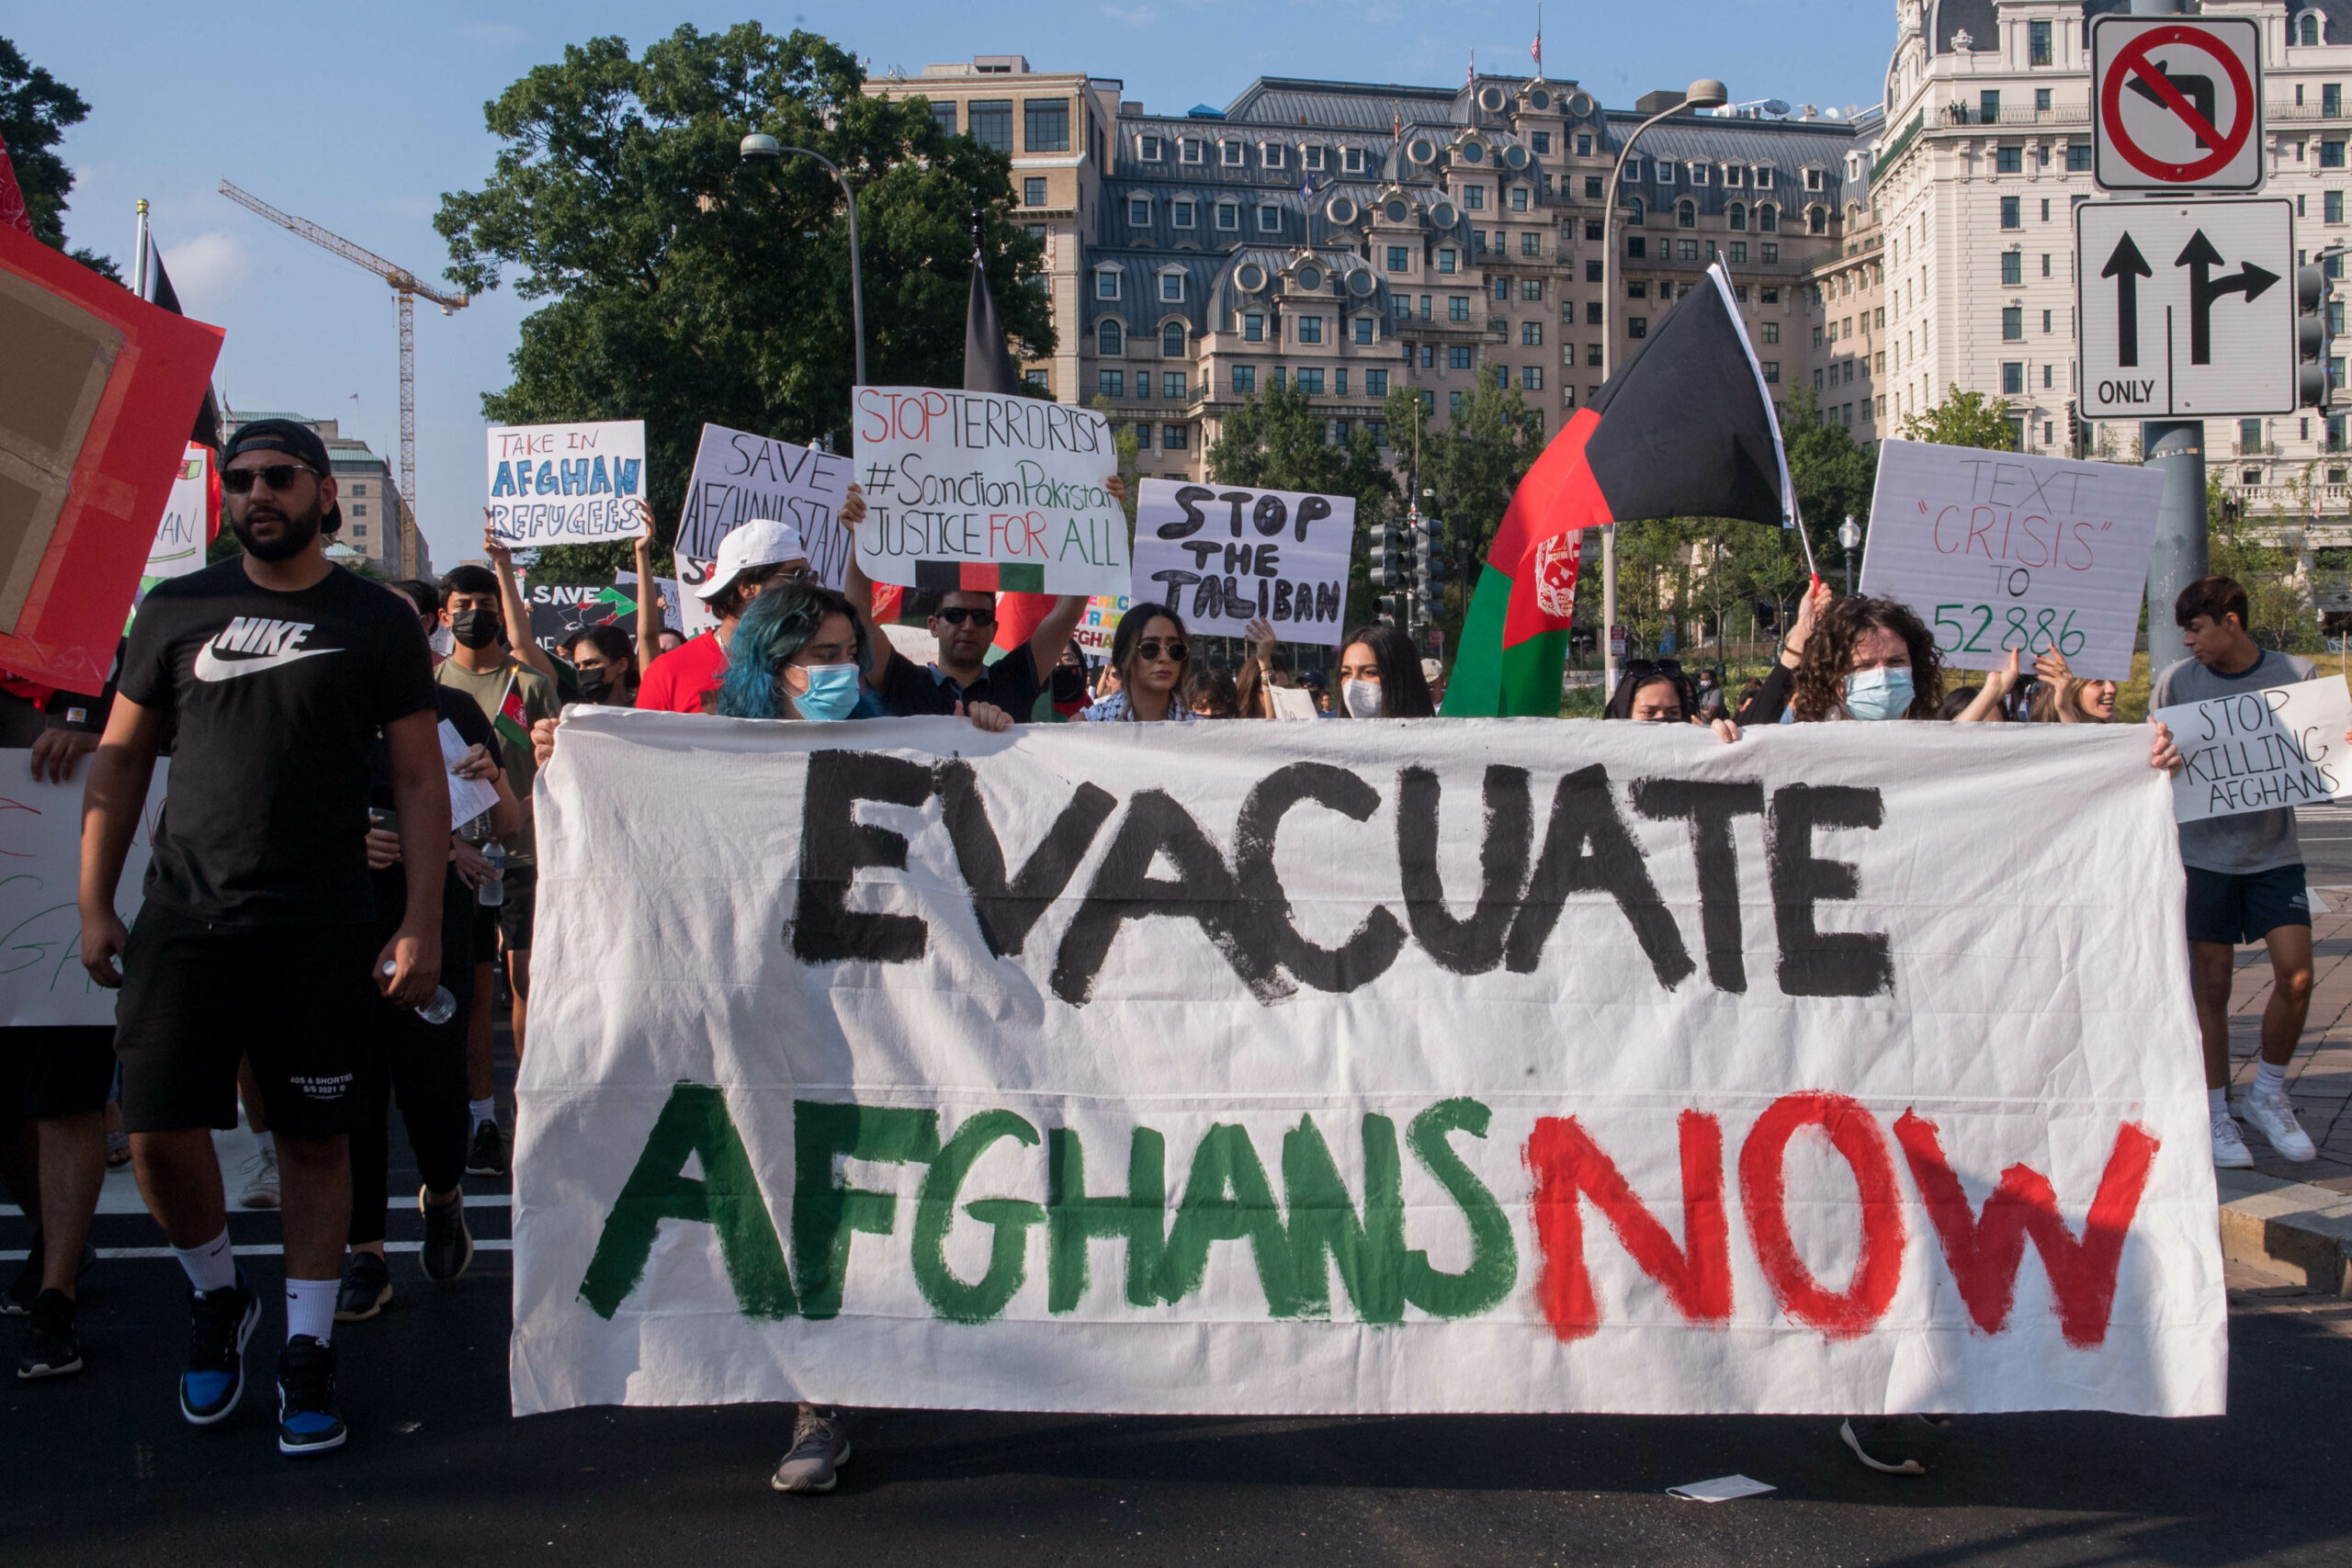 U.S. military has left Afghanistan; evacuation of Americans, Afghans moves into next phase